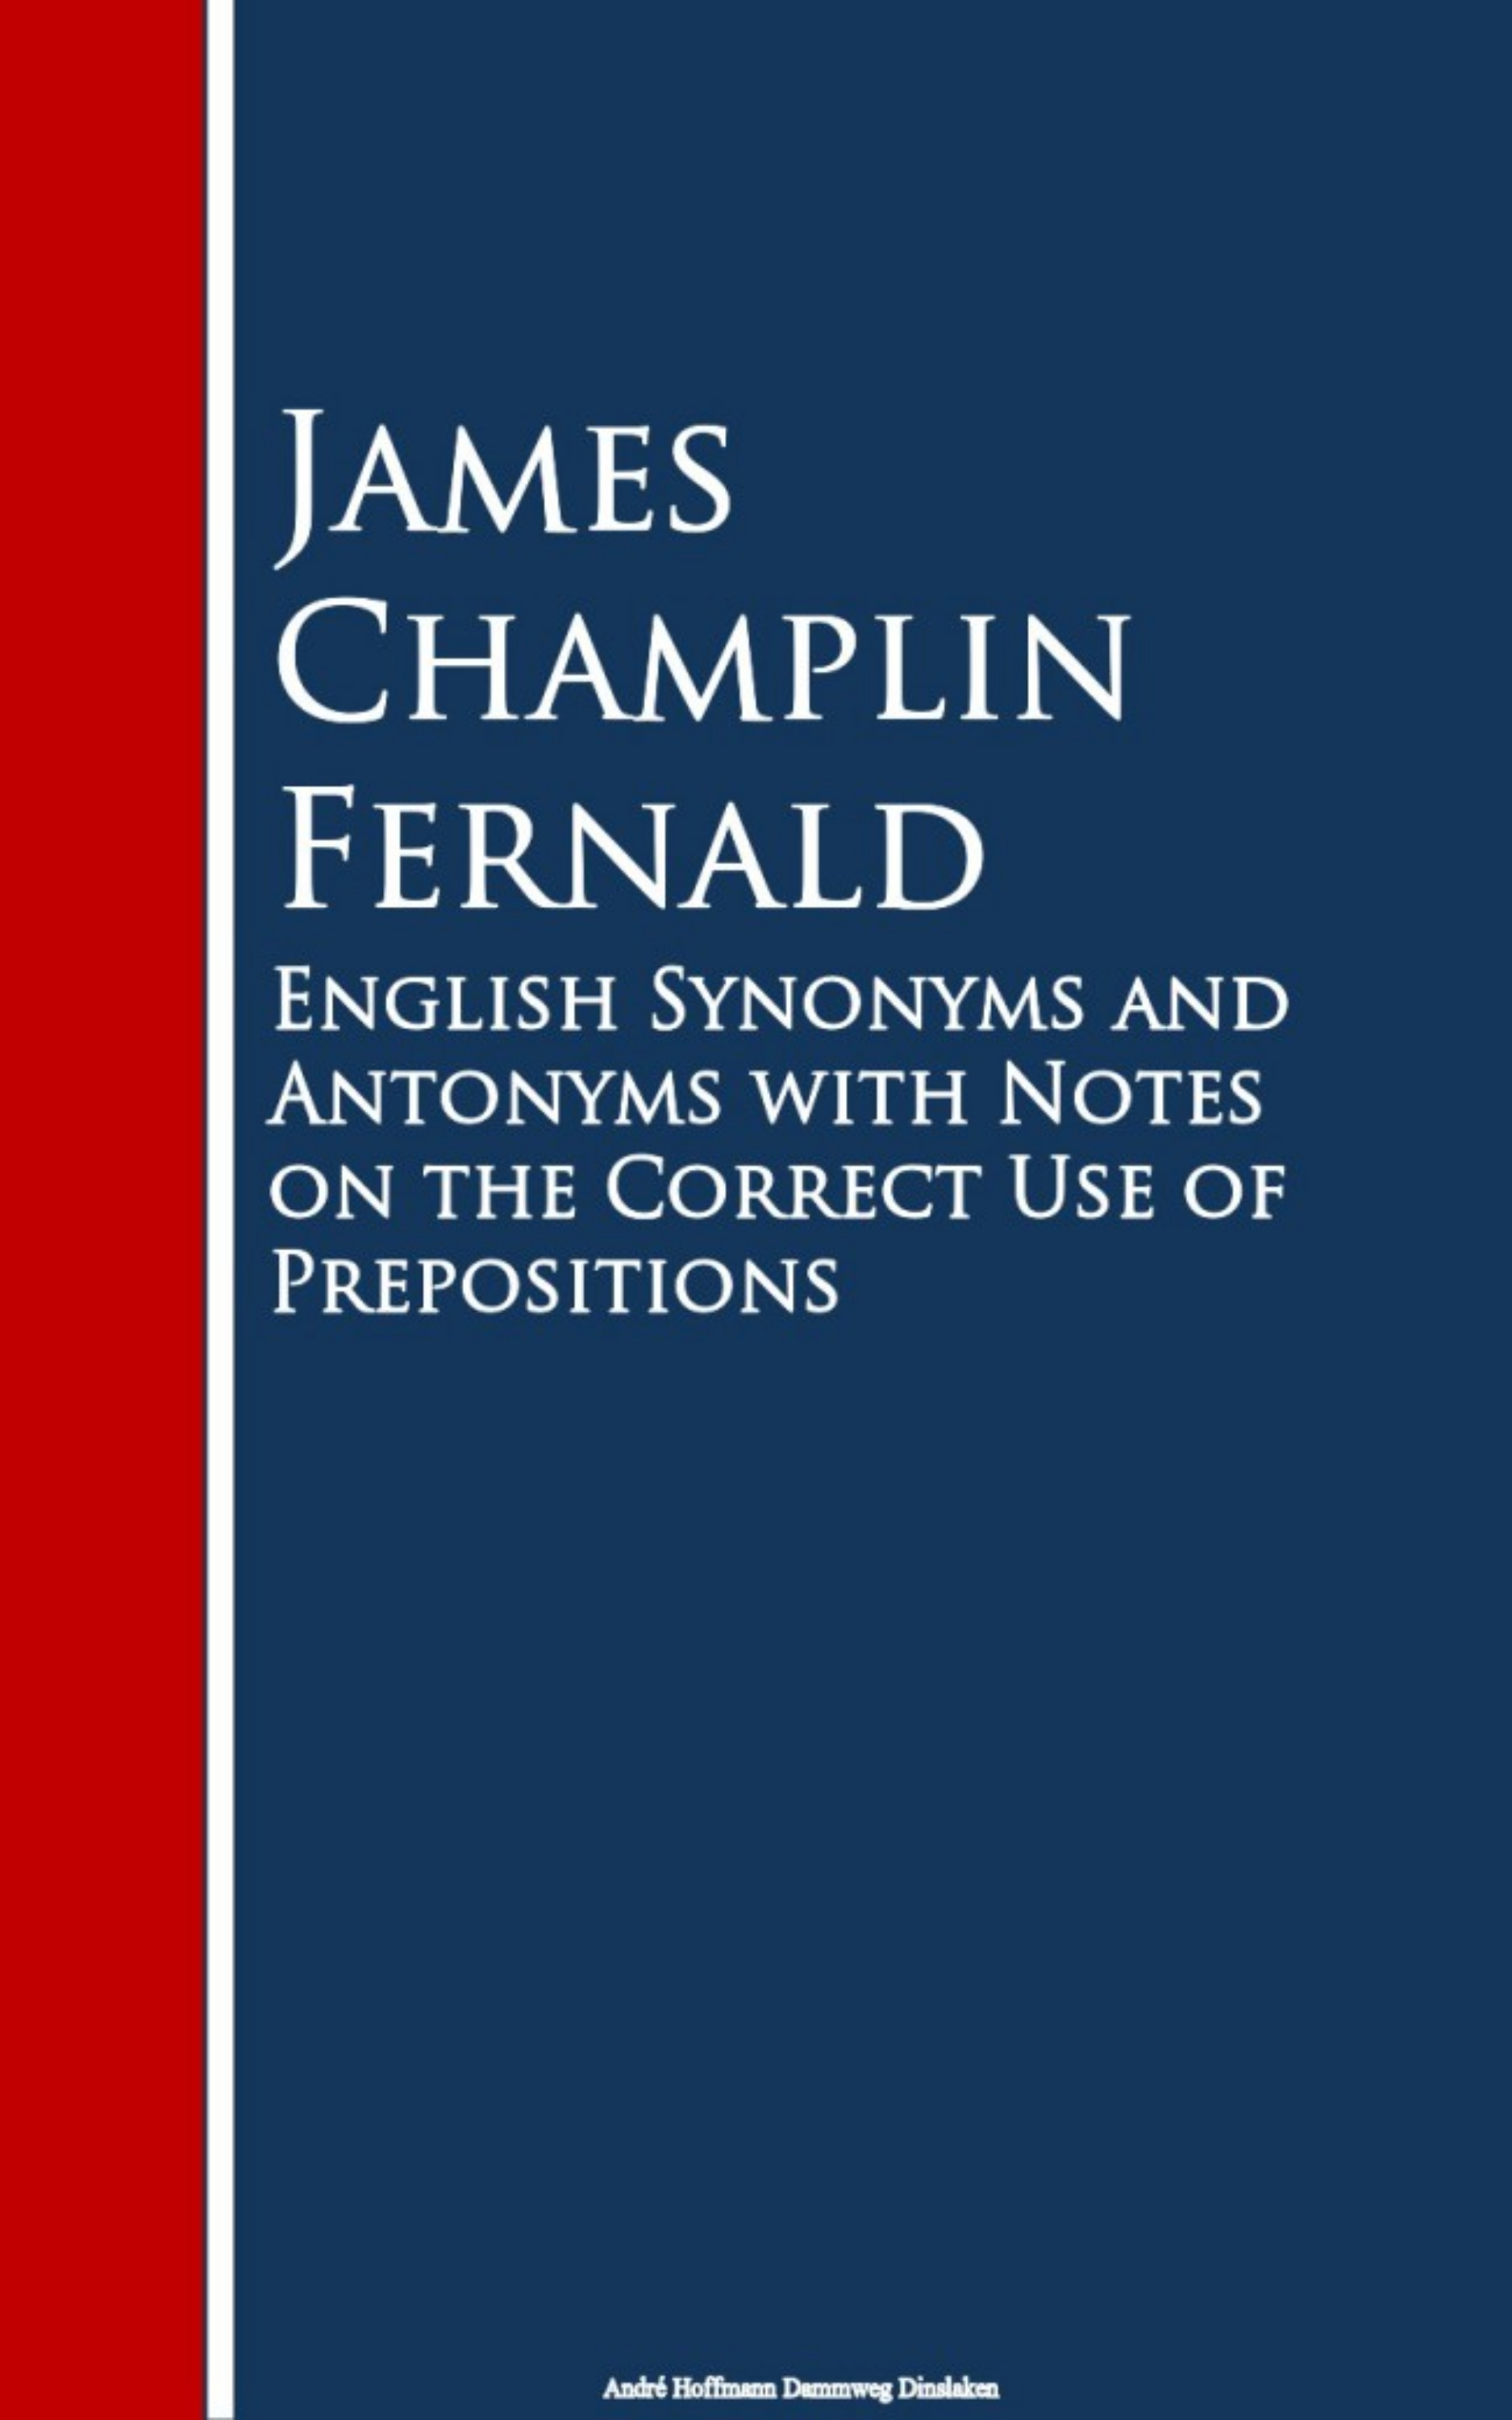 English Synonyms and Antonyms with Notes on the Crect Use of Prepositions ( James Champlin Fernald  )